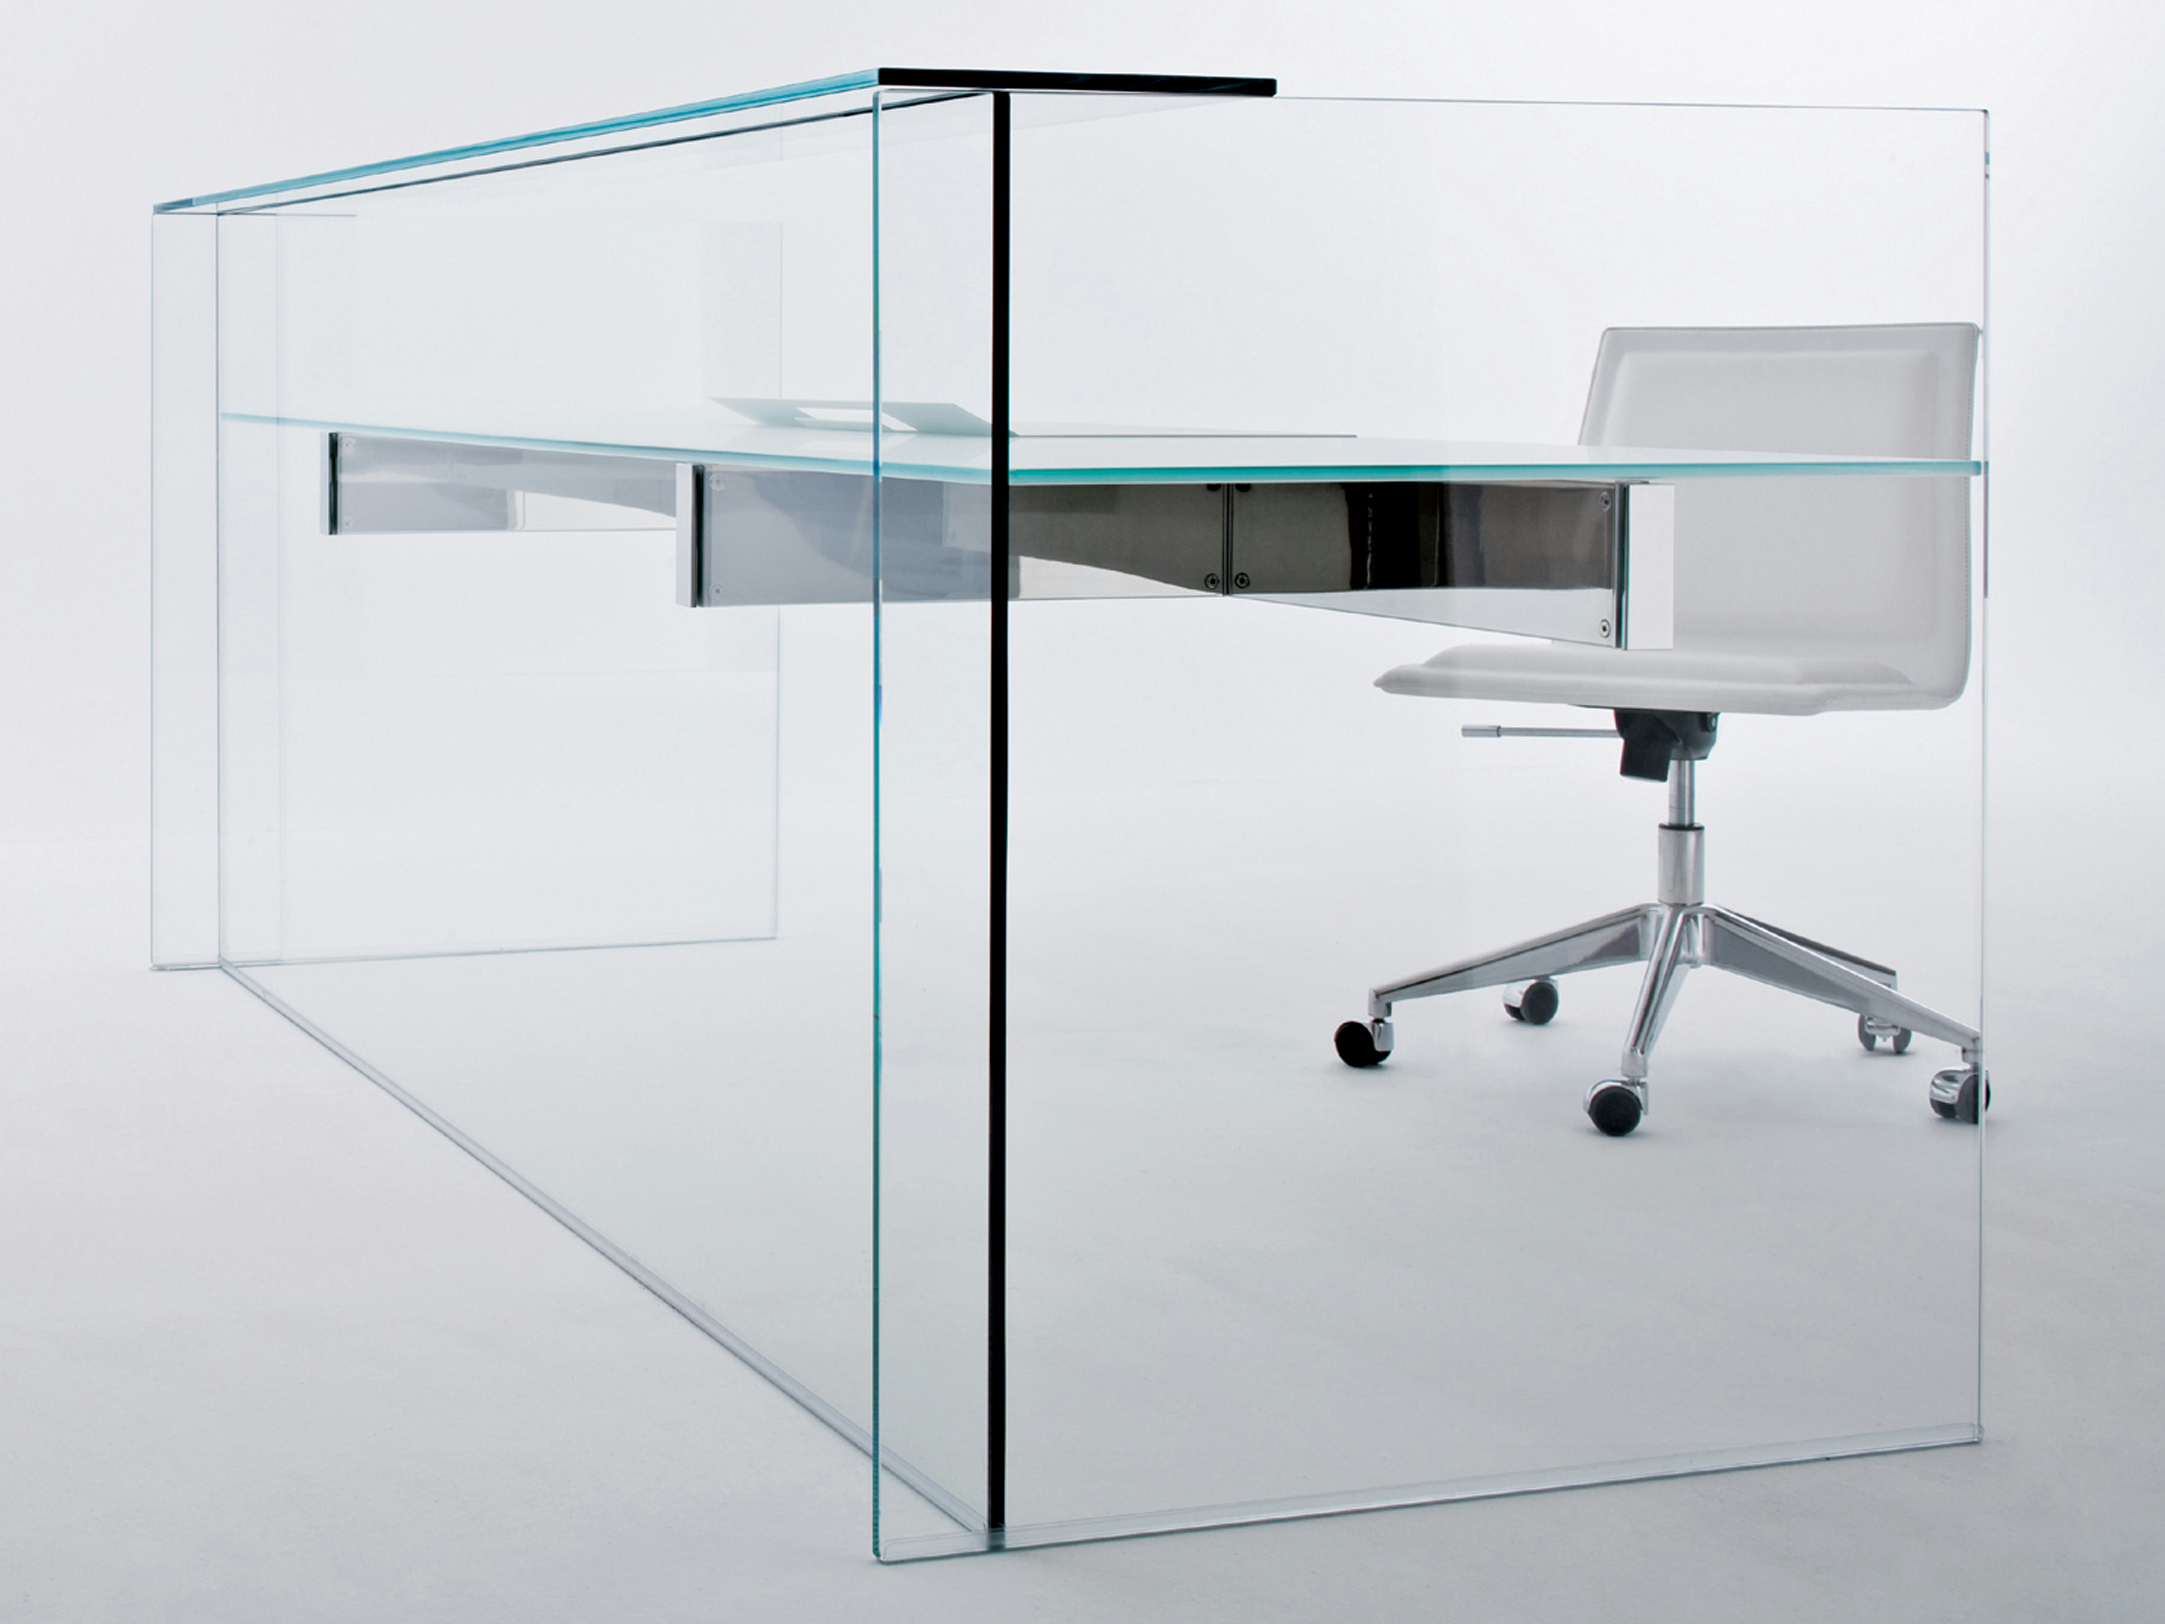 Escritorio de cristal air desk hall by gallotti radice - Escritorio de cristal ikea ...